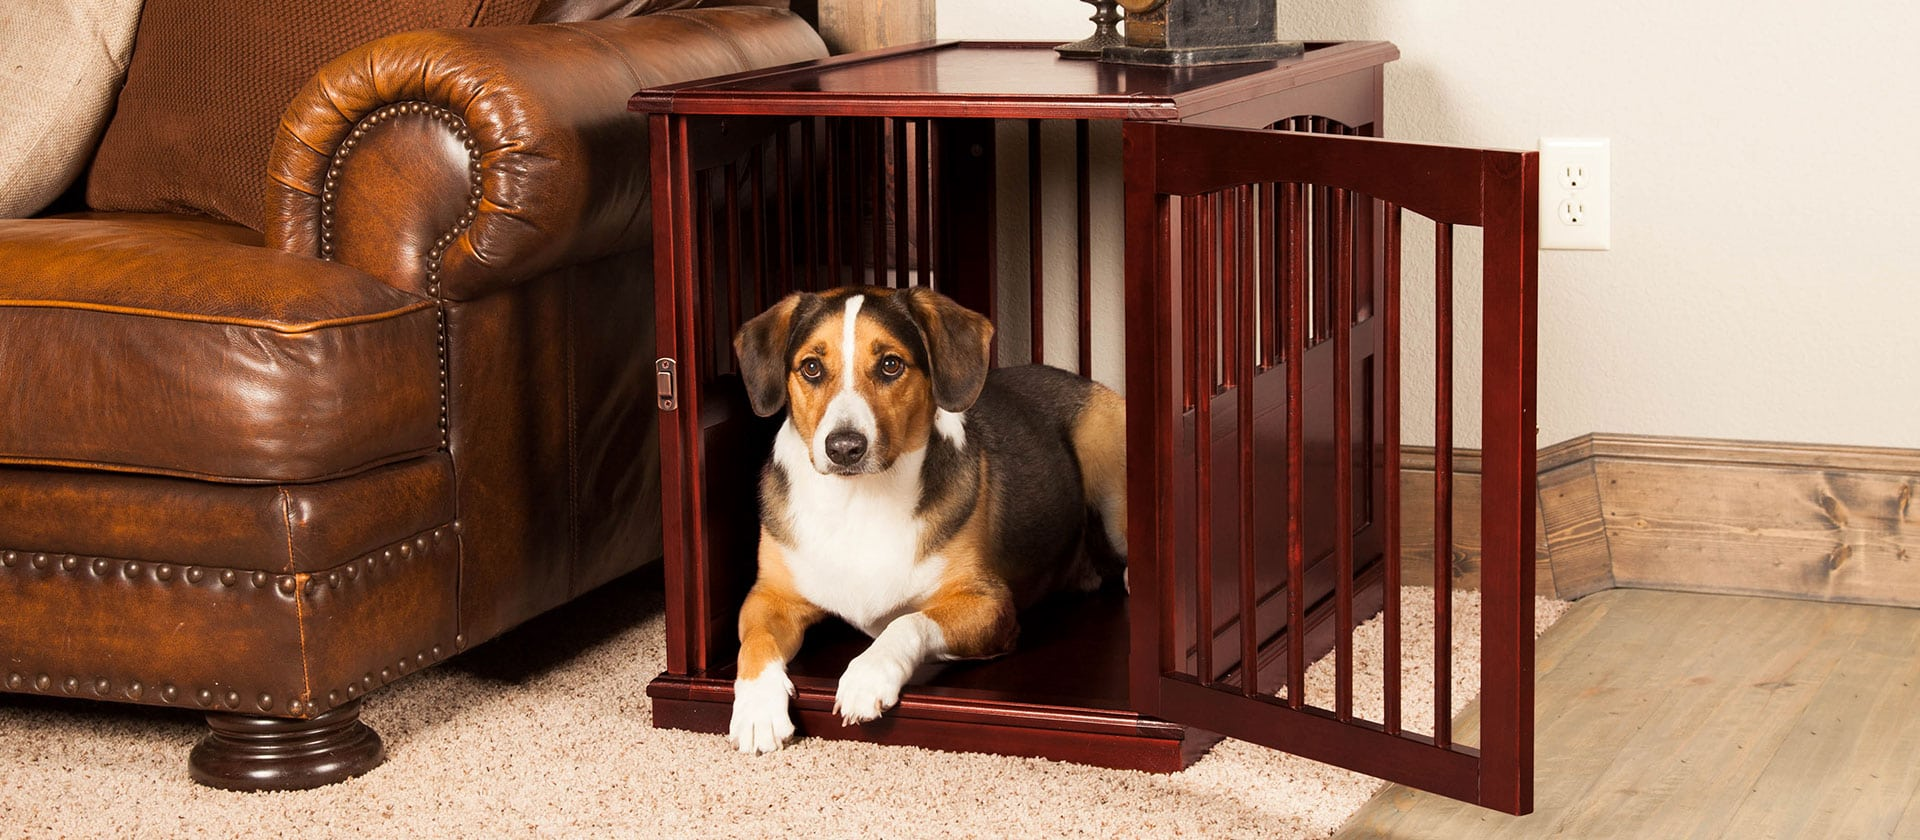 Heavy Duty Dog Crate Review by www.puppyurl.com